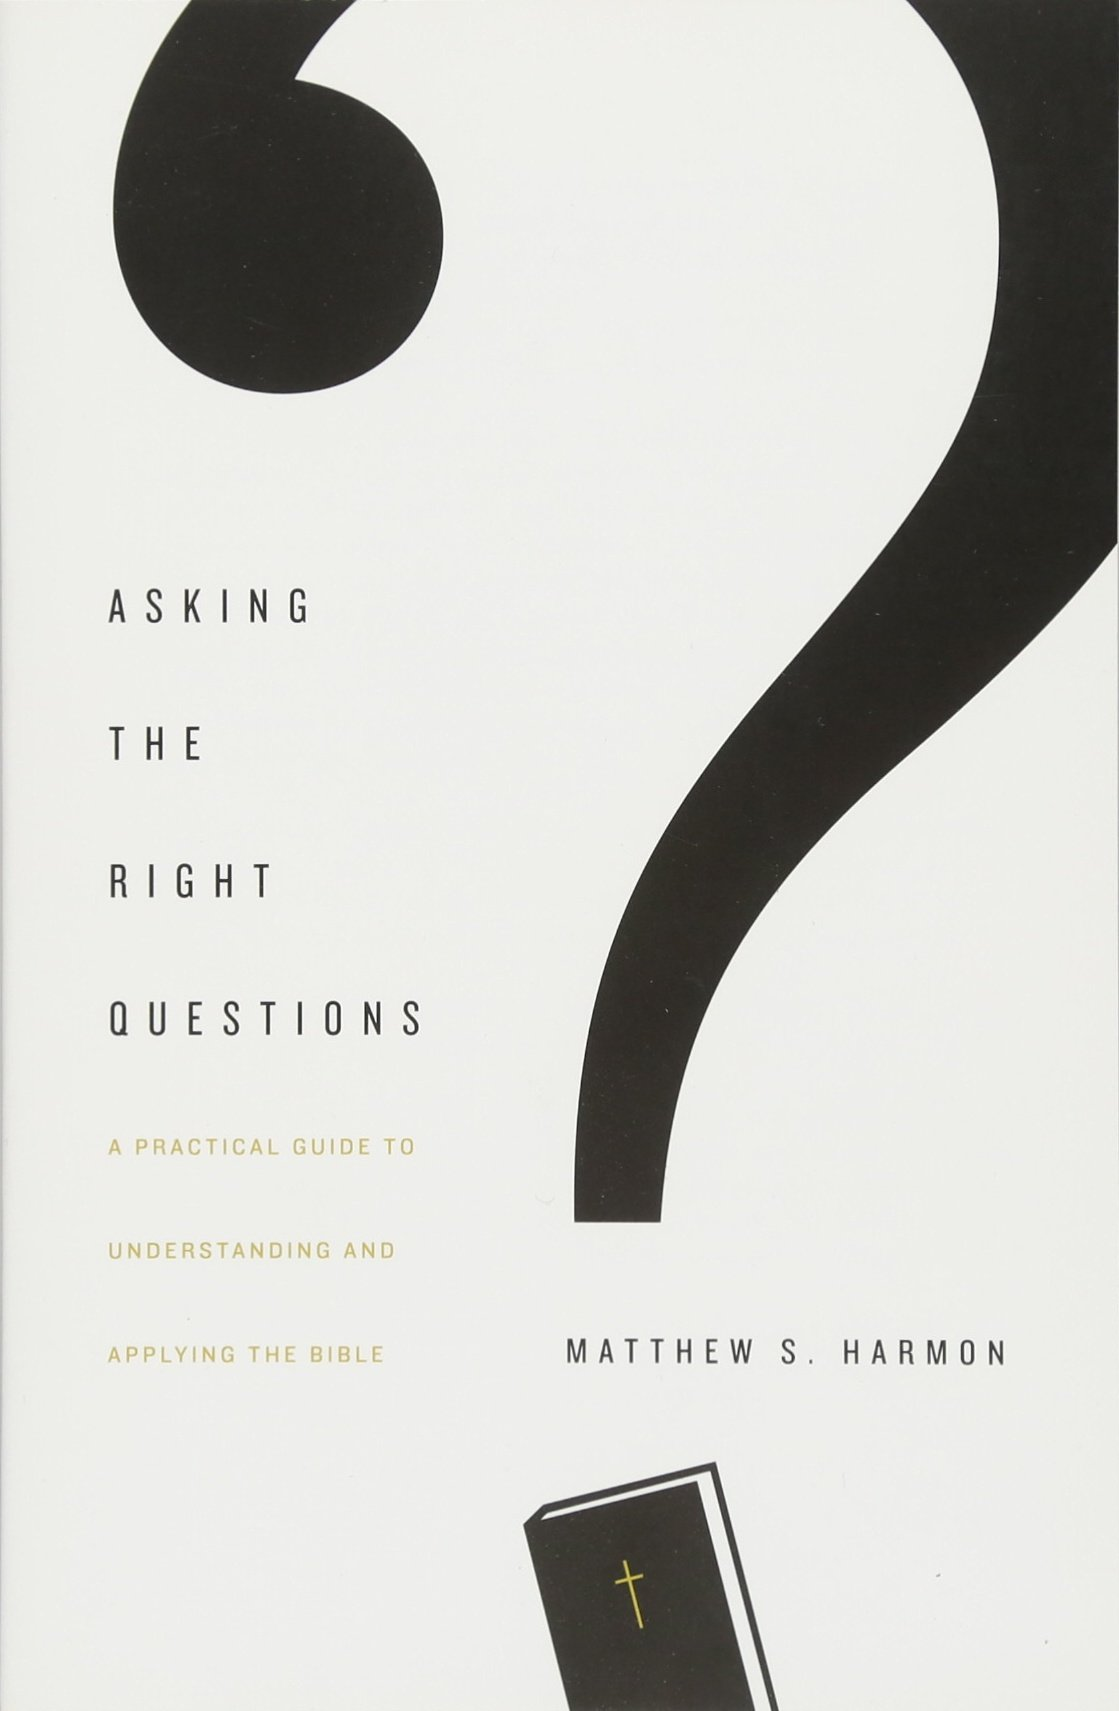 Asking the Right Questions: A Practical Guide to Understanding and Applying  the Bible: Matthew S. Harmon: 9781433554292: Amazon.com: Books